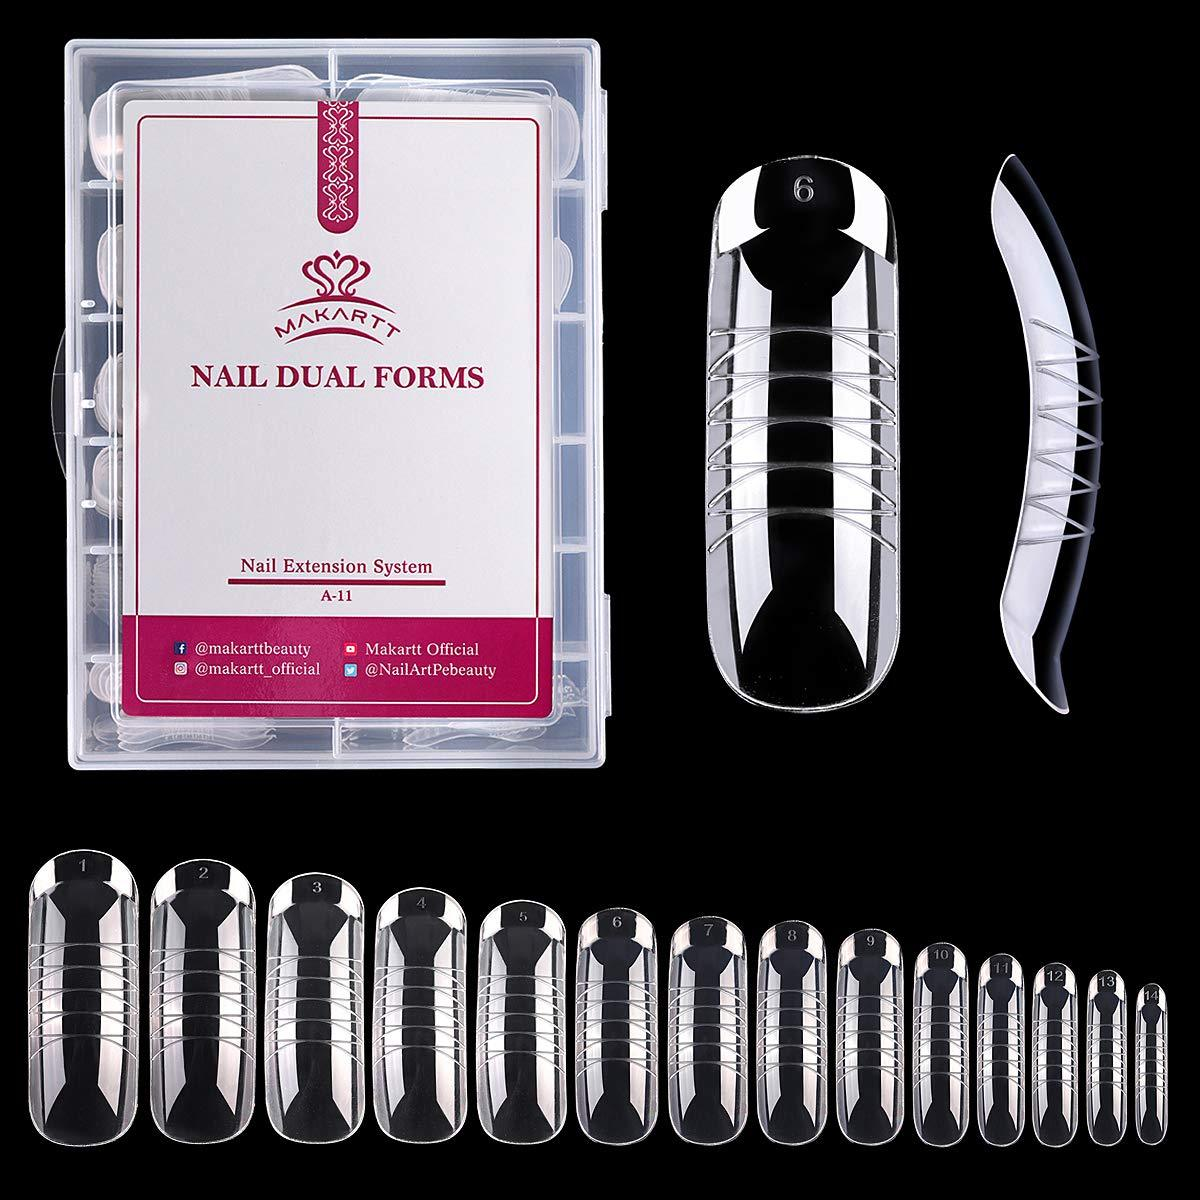 140 Pieces Poly Nail Extension Gel Dual Forms with Clear Plastic Case